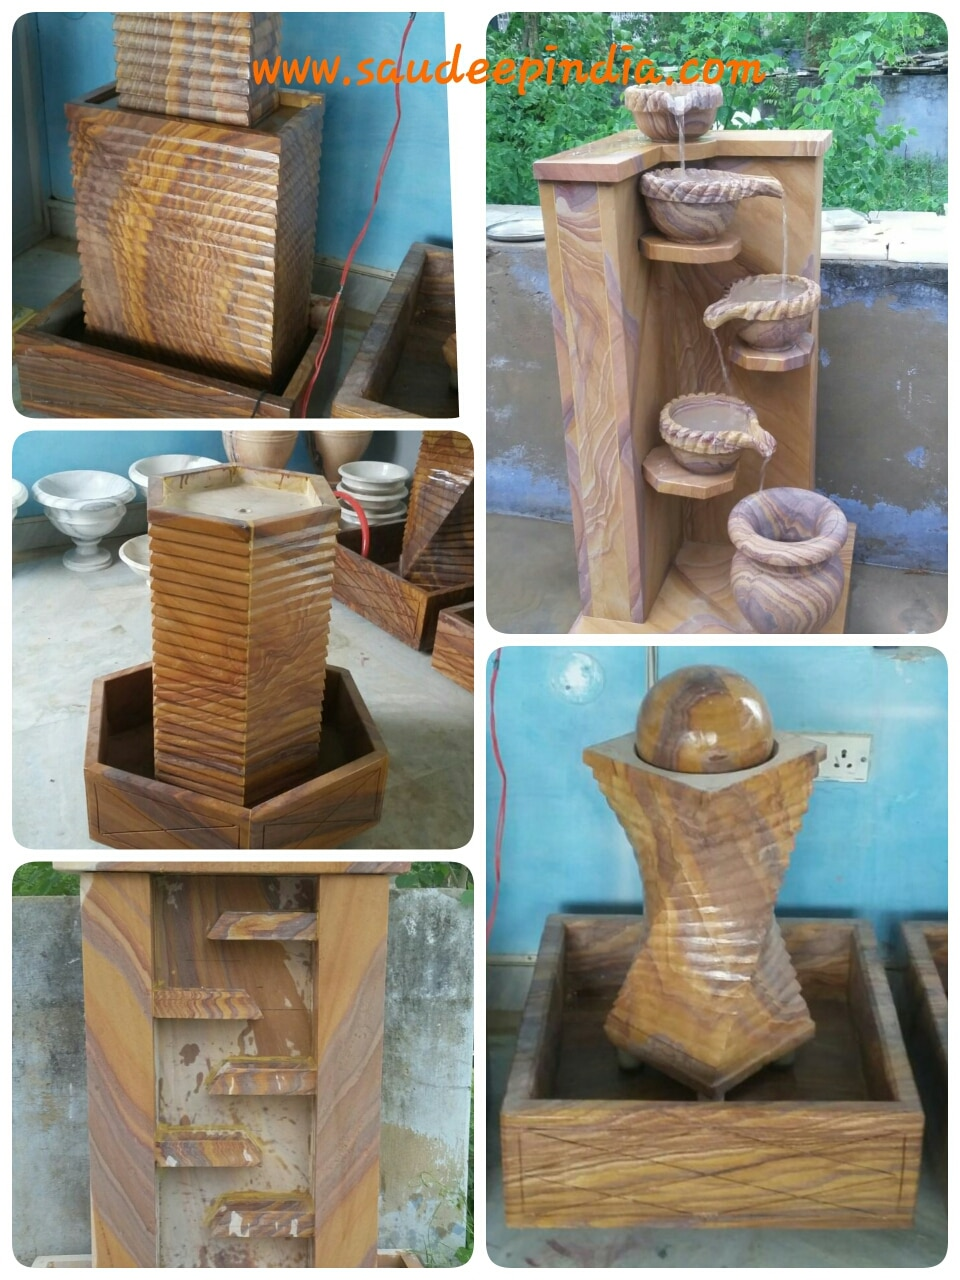 Our new range of Sandstone, Marble Fountain. We are manufacturer and exporter of Marble, Stone Fountain in Jaipur. We export fountains to Malasiya, brunei, China, Indonesia, kuwait...etc